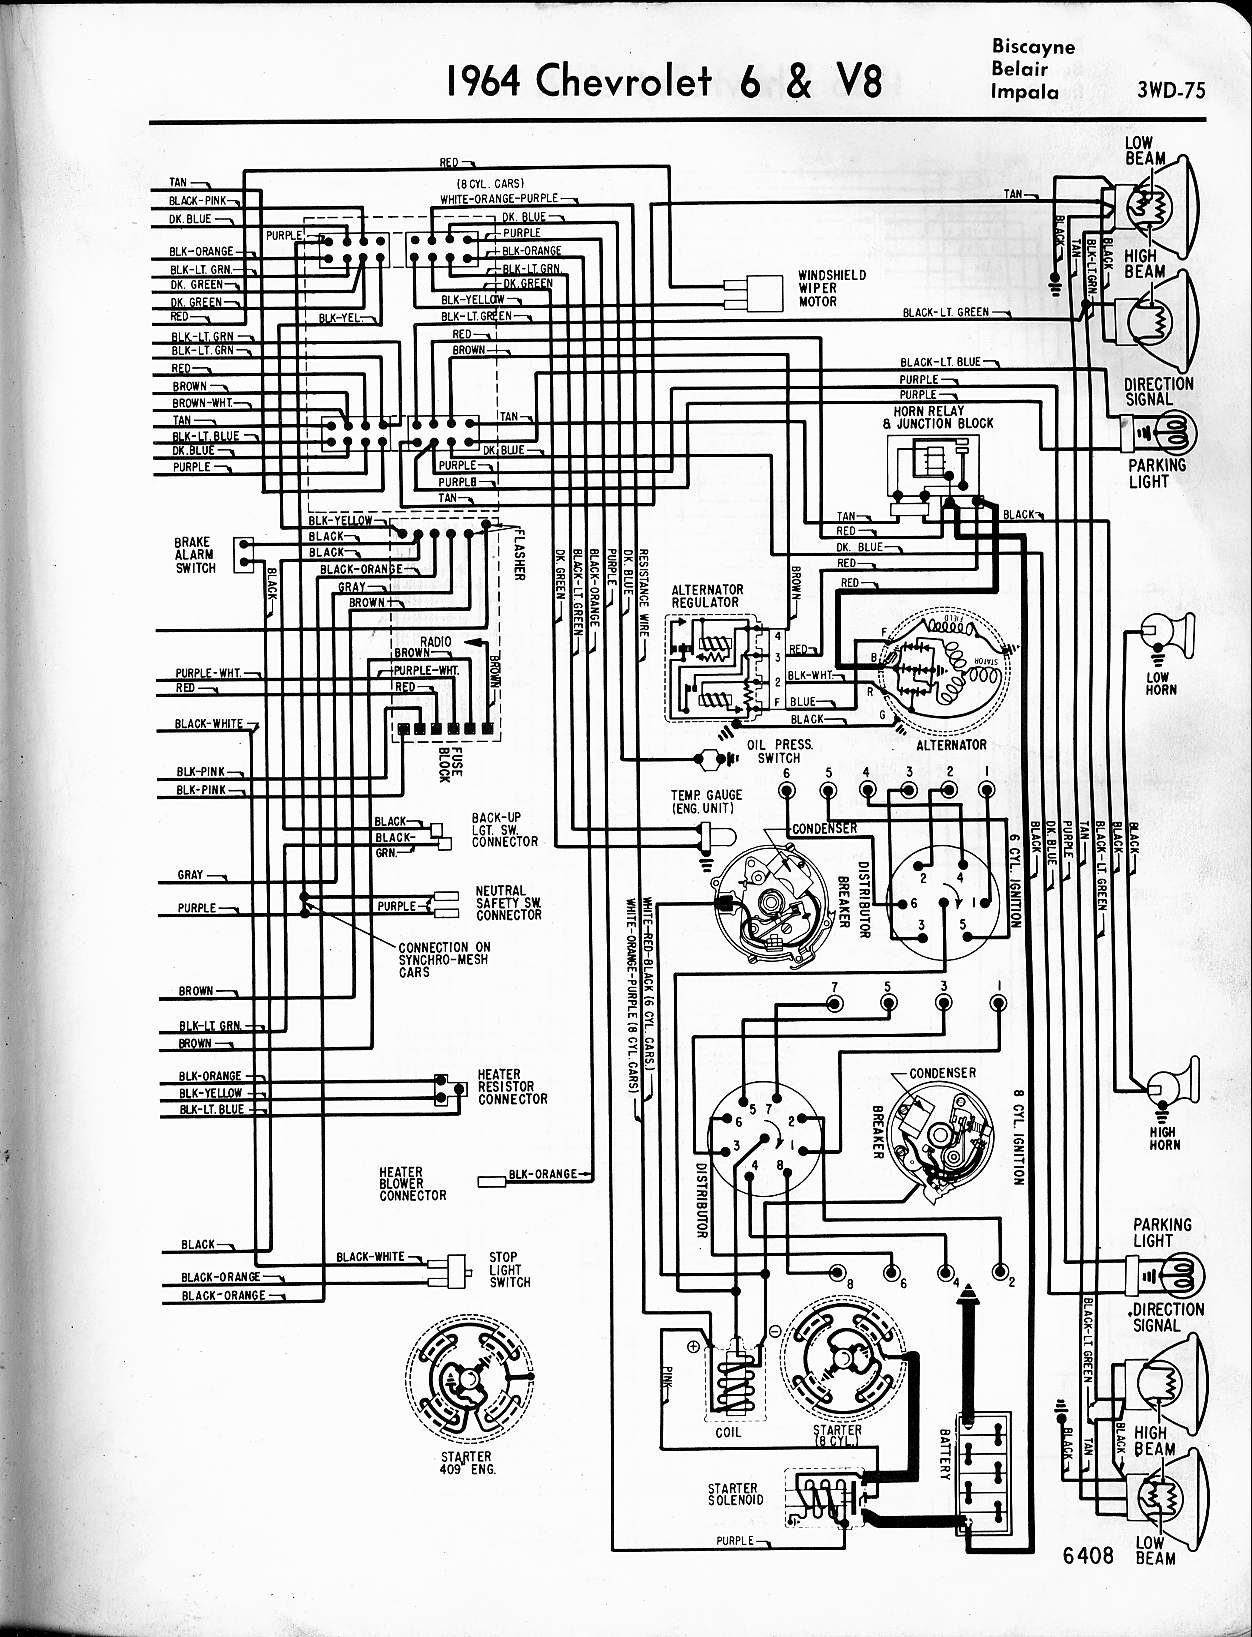 hight resolution of 1964 chevy impala turn signal wiring diagram wiring schematic63 chevy impala wiring diagram wiring diagram blog